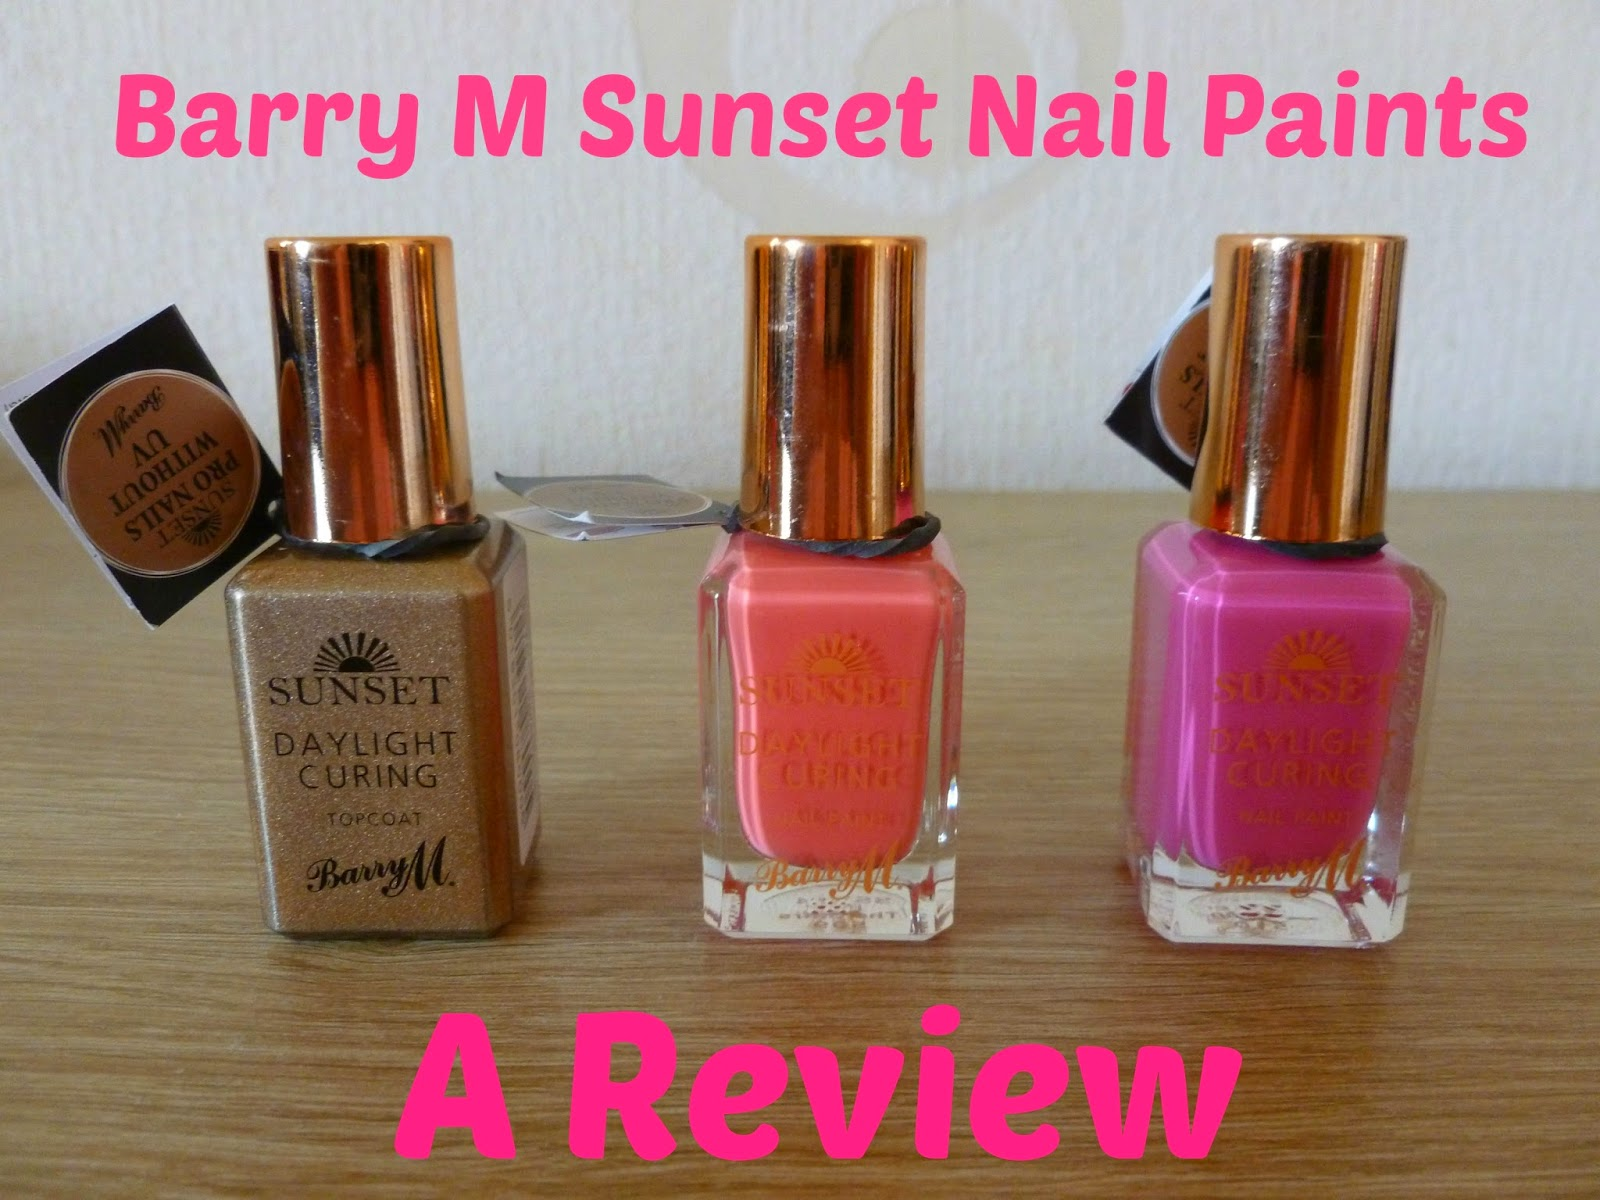 Barry m Sunset Nail Paints